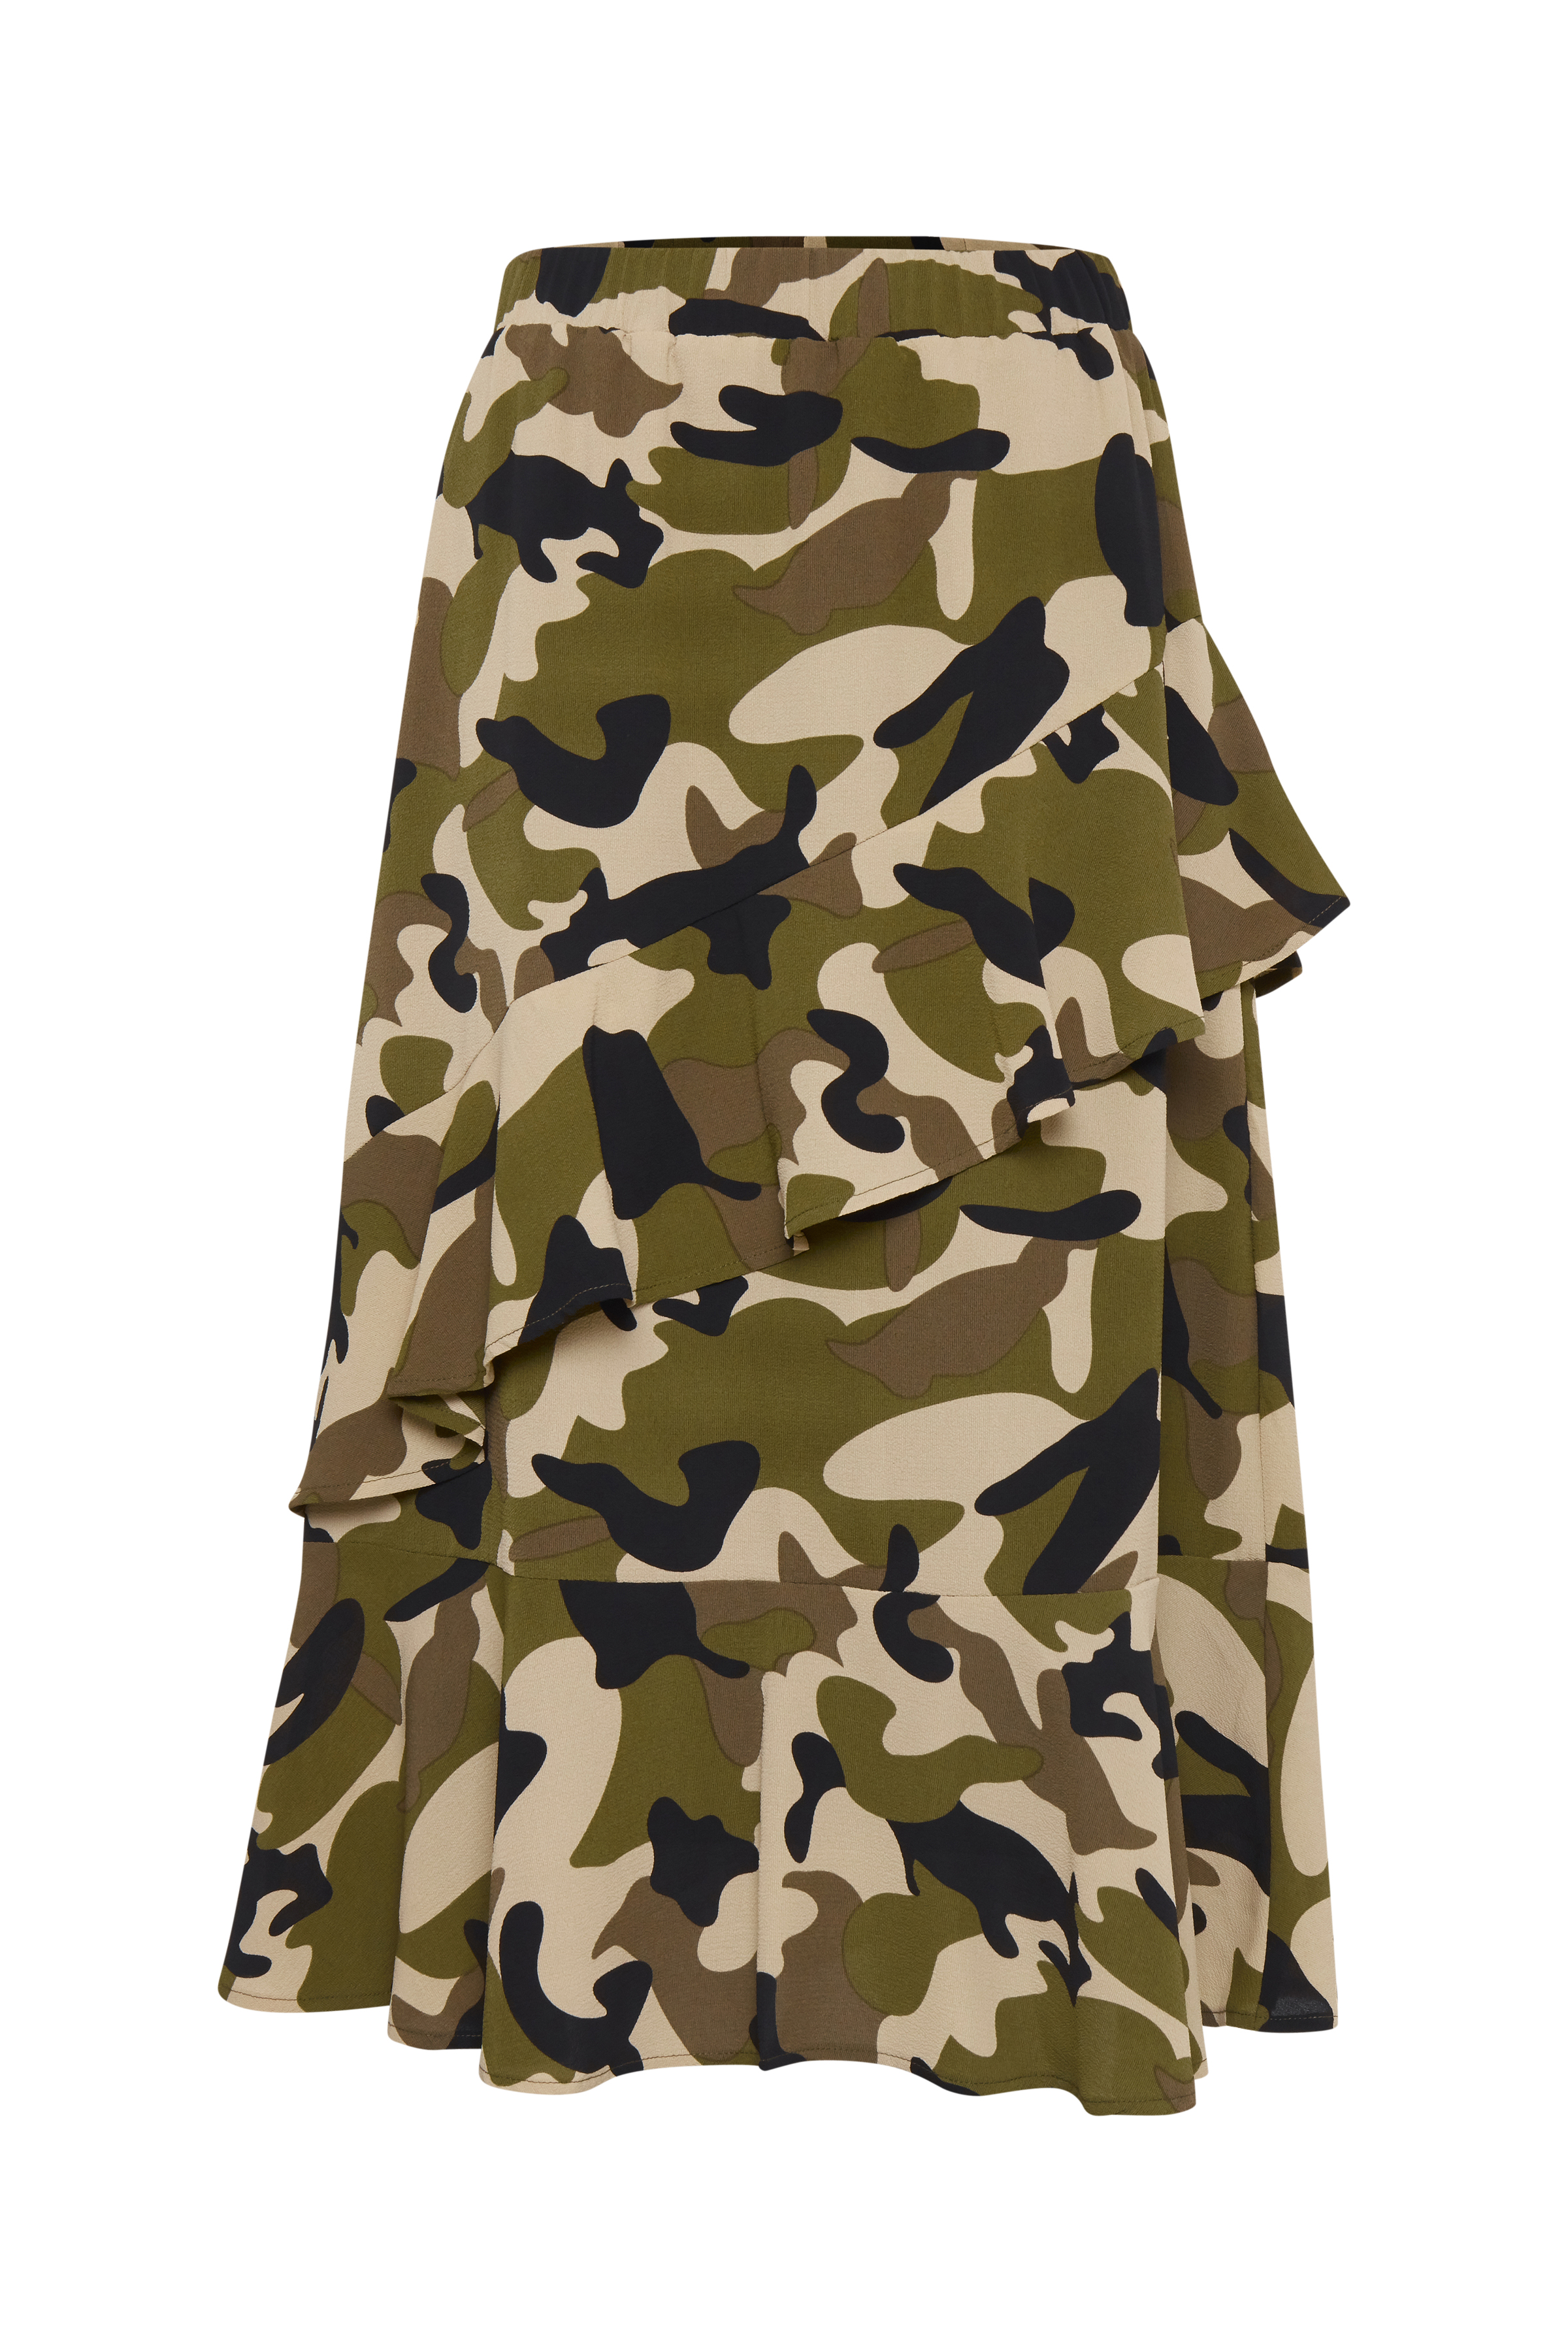 Camo combi 1 Skirt from b.young – Buy Camo combi 1 Skirt from size 36-44 here